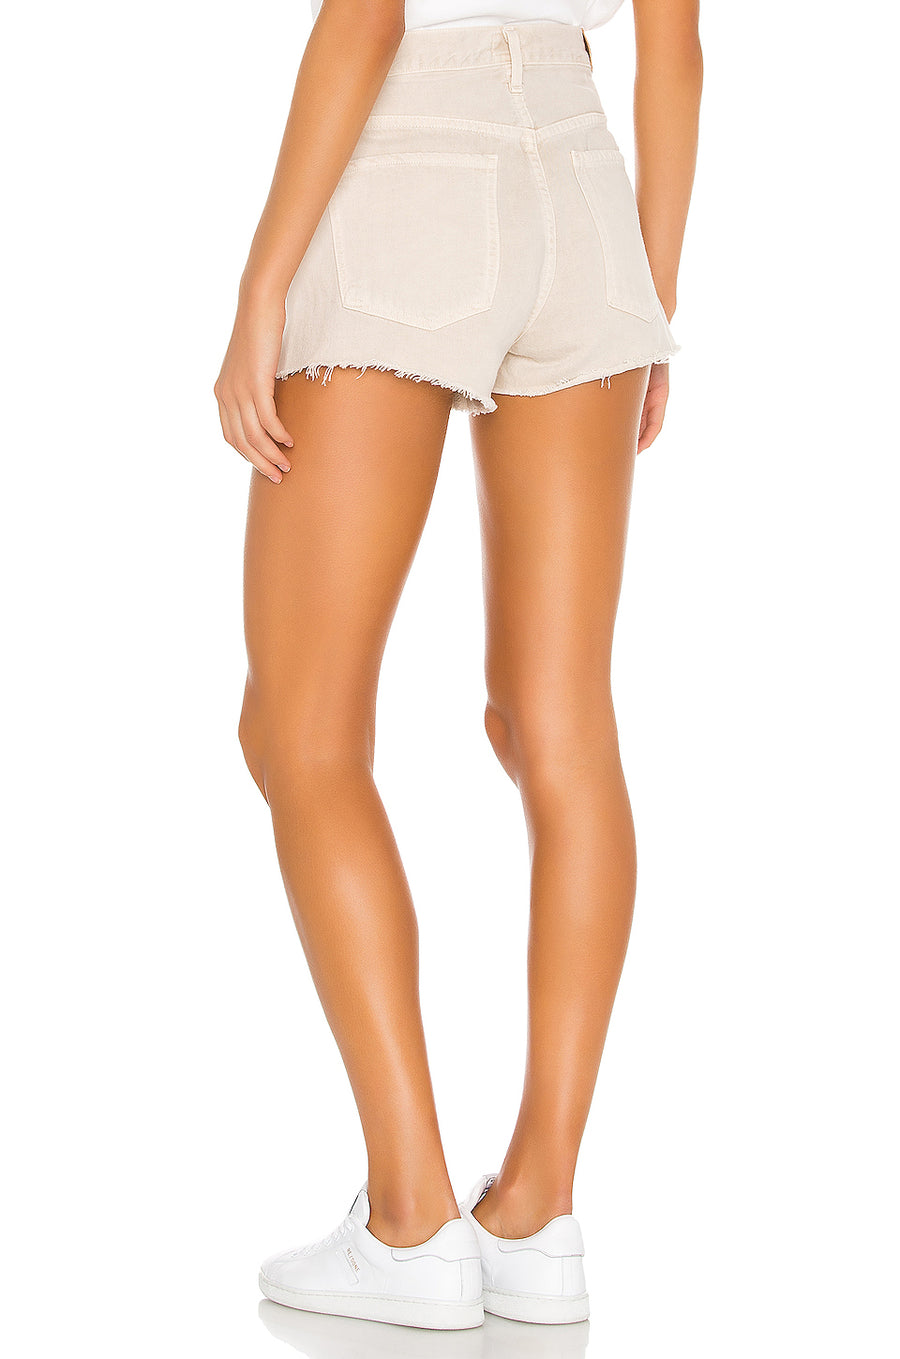 Citizens of Humanity Annabelle Cut Off Shorts